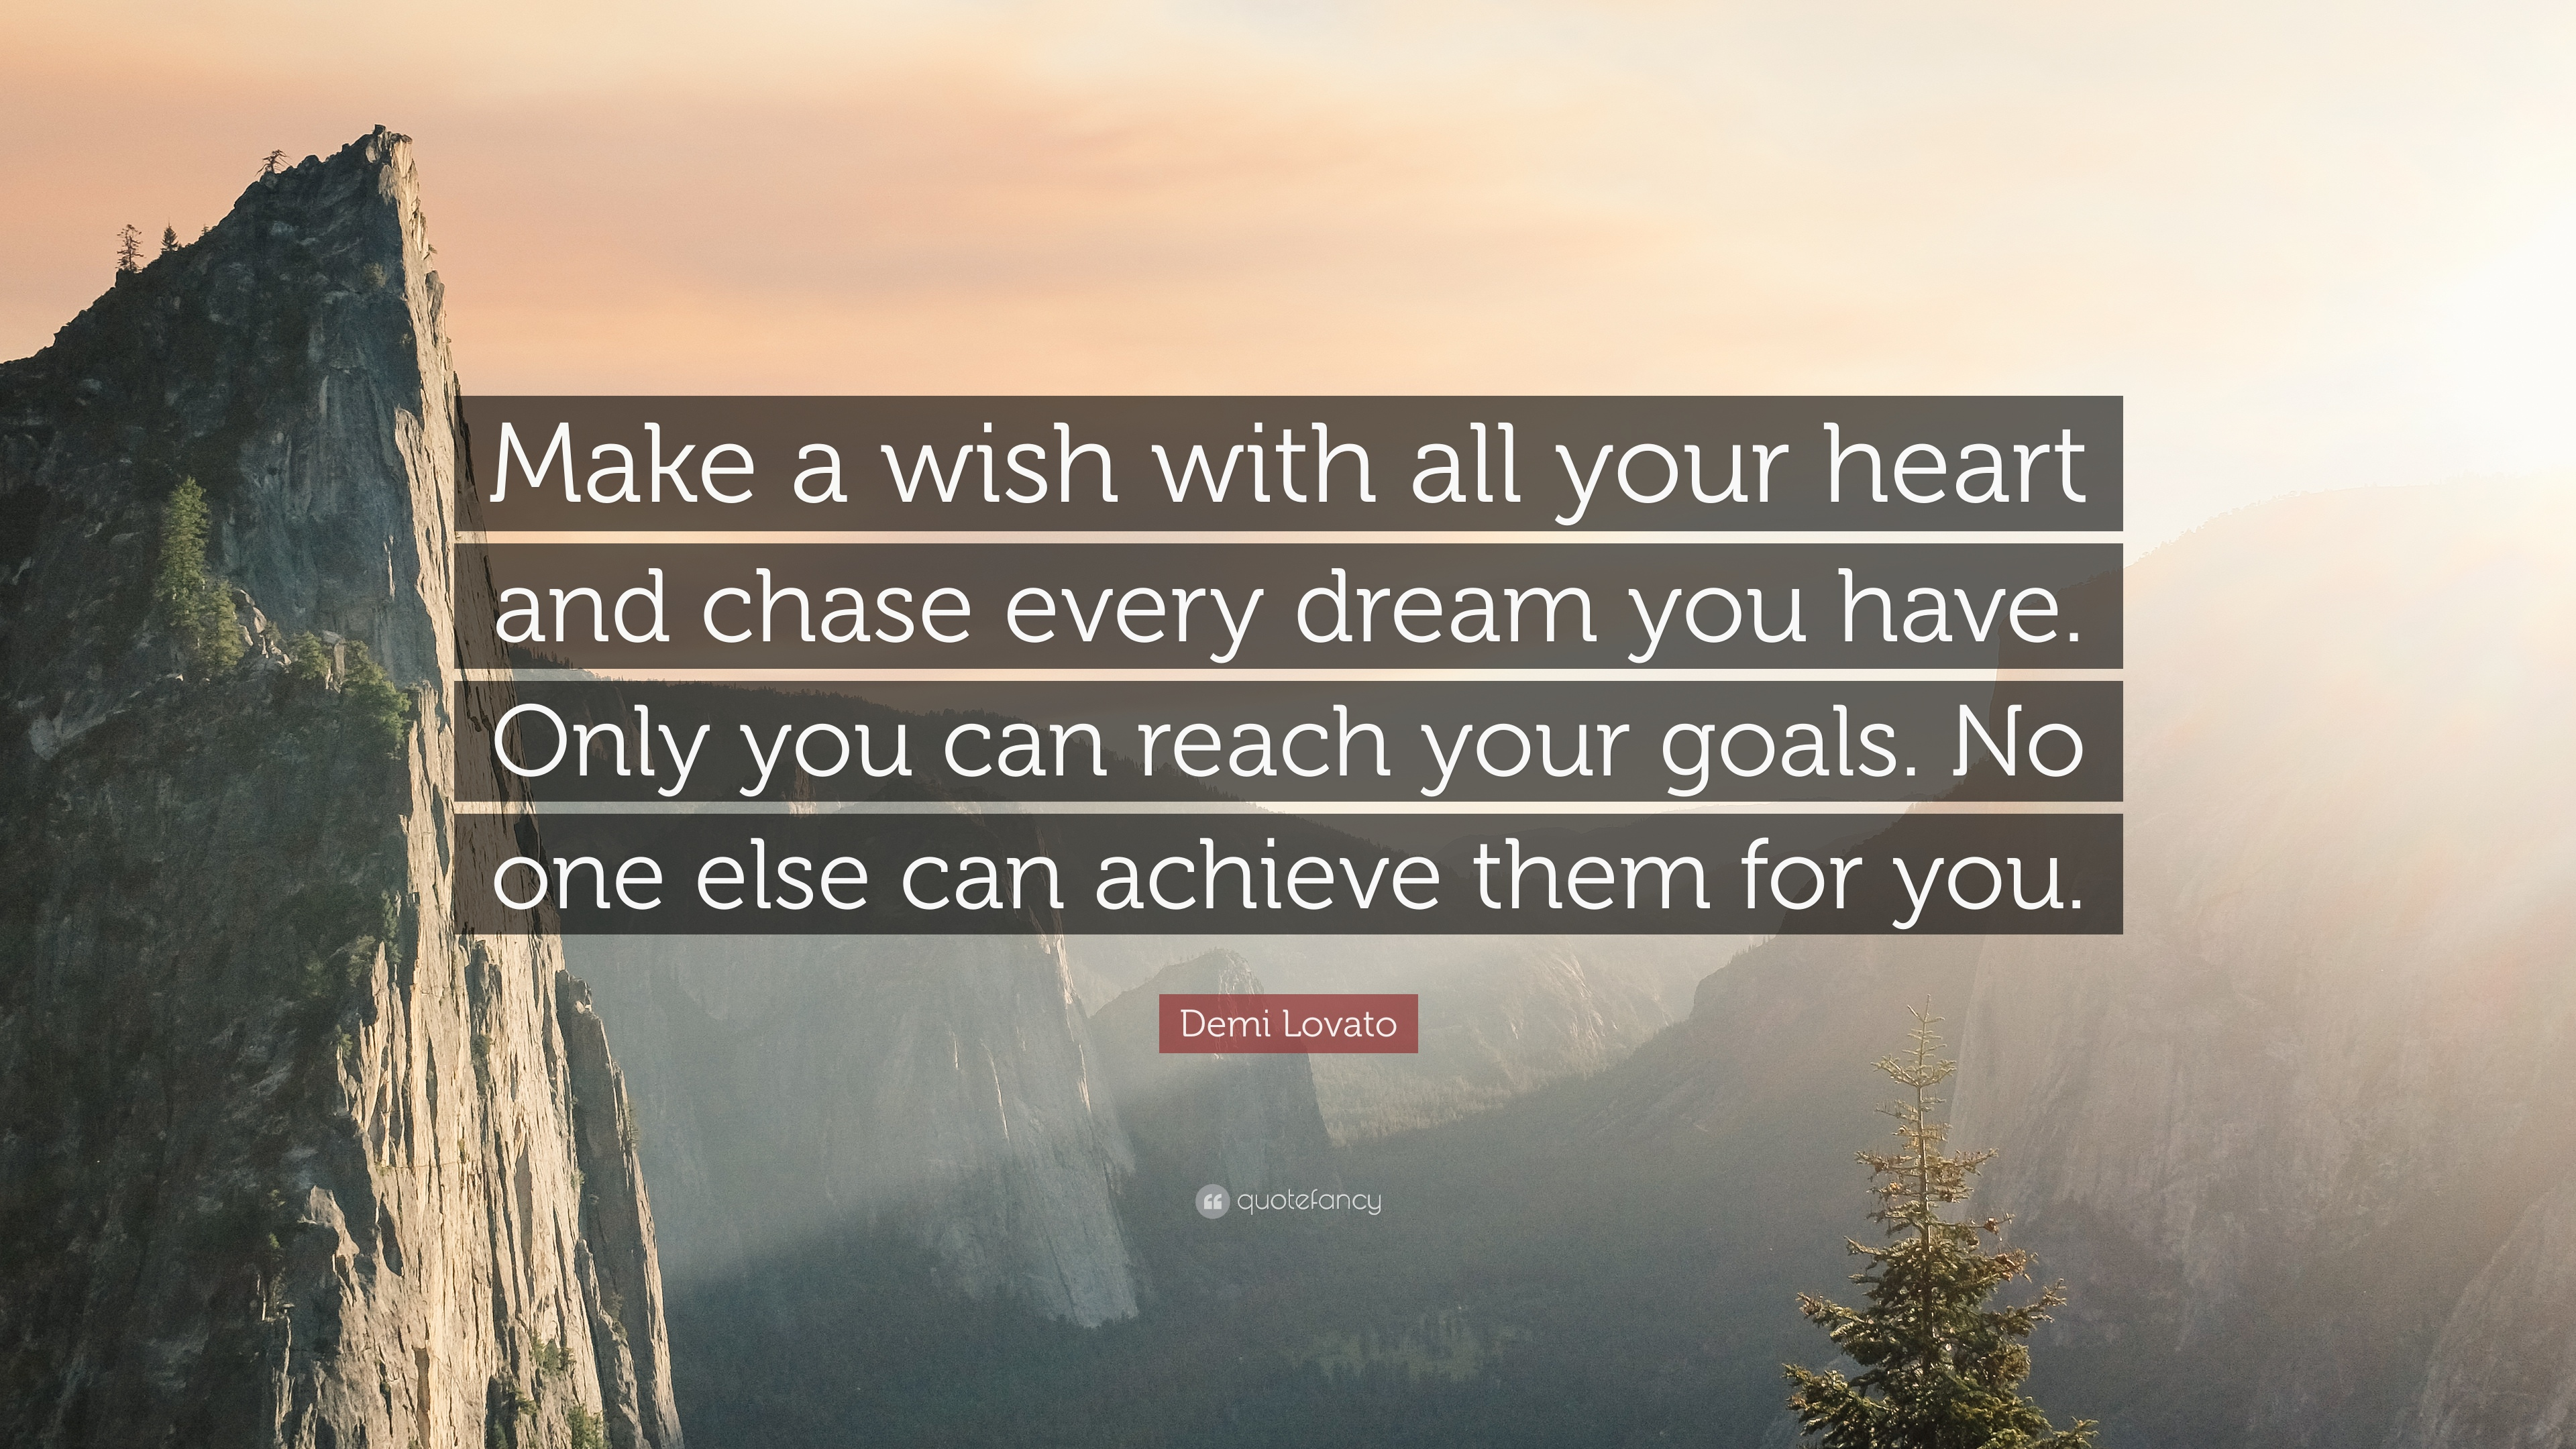 goal quotes quotefancy goal quotes make a wish all your heart and chase every dream you